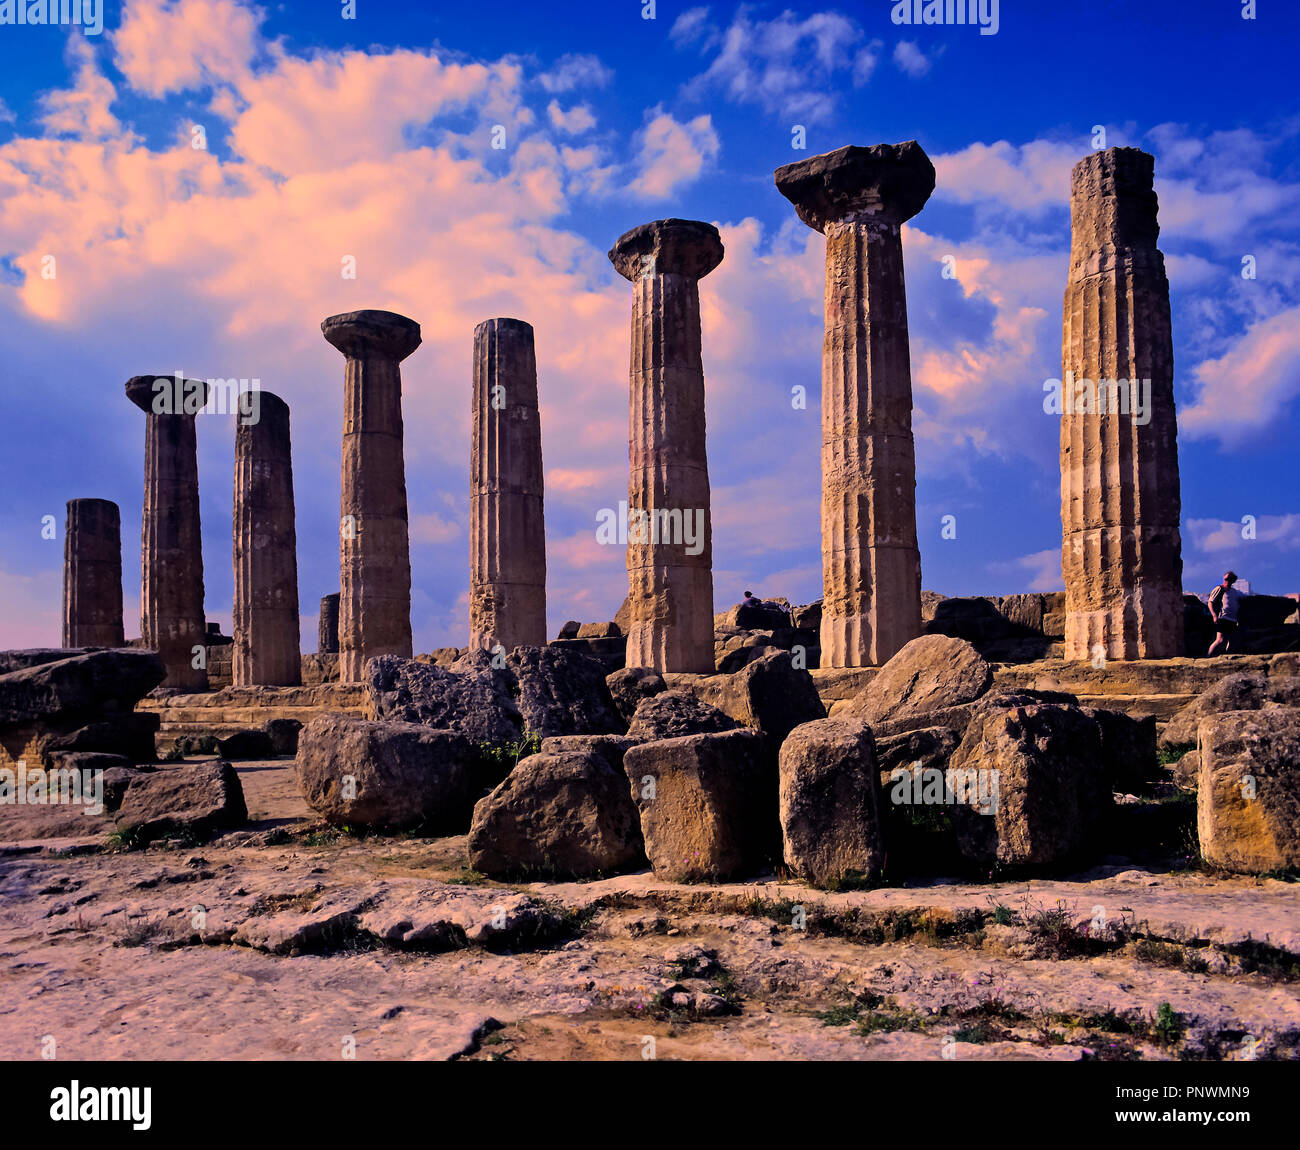 Temple of Heracles - 5th century BC. Valley of the temples. Agrigento. Sicily. Italy. Europe - Stock Image